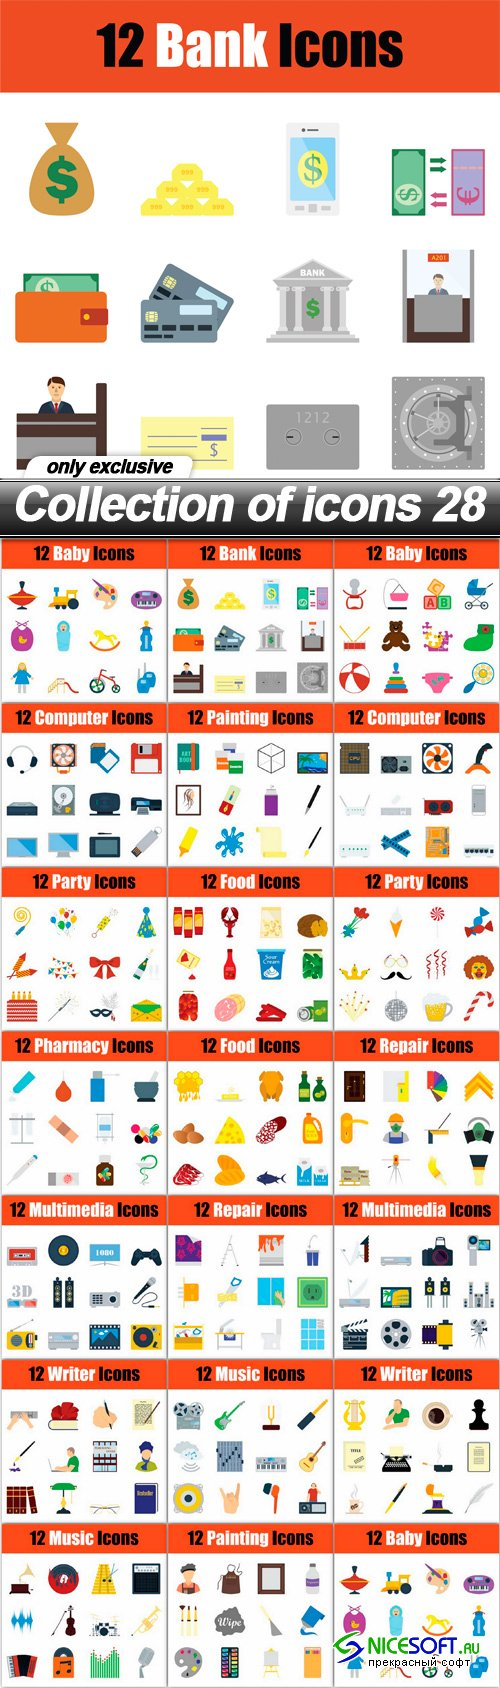 Collection of icons 28